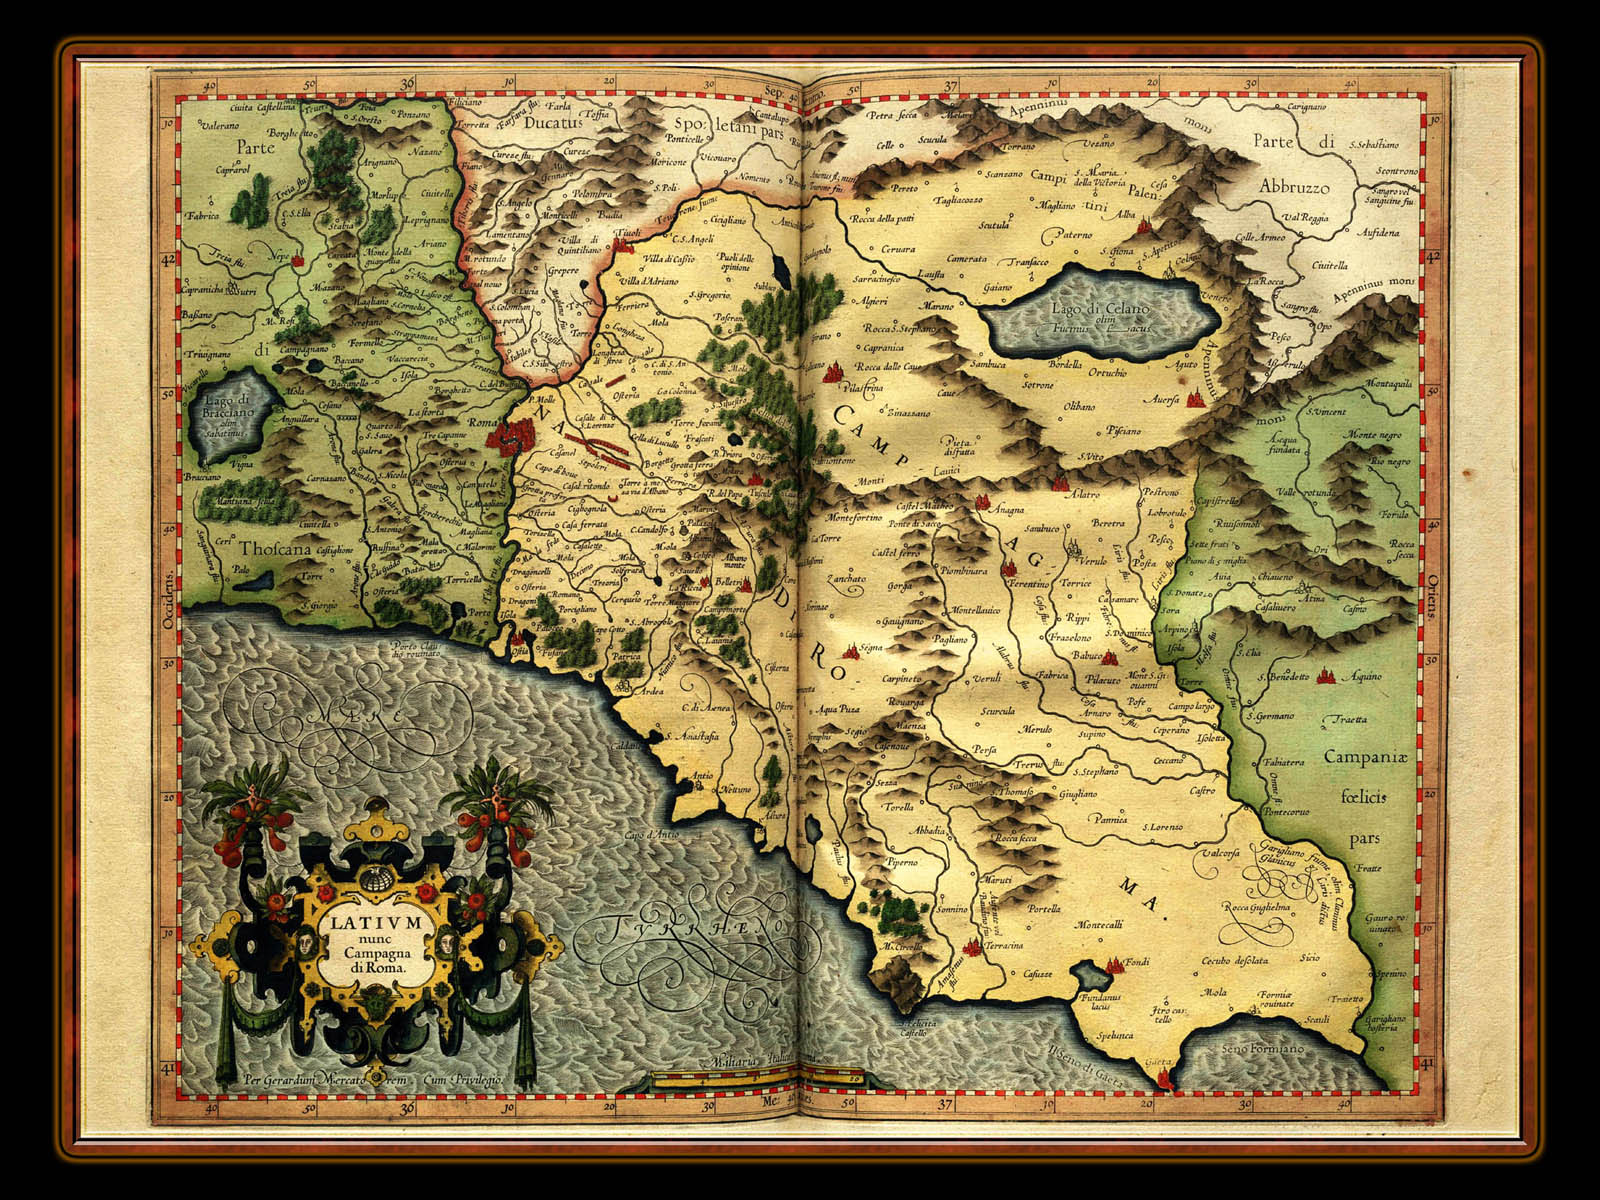 Map wallpaper illuminated manuscript atlas of maps for desktop gerhard mercator 1595 world atlas cosmographicae wallpaper no 12 of 106 gumiabroncs Images